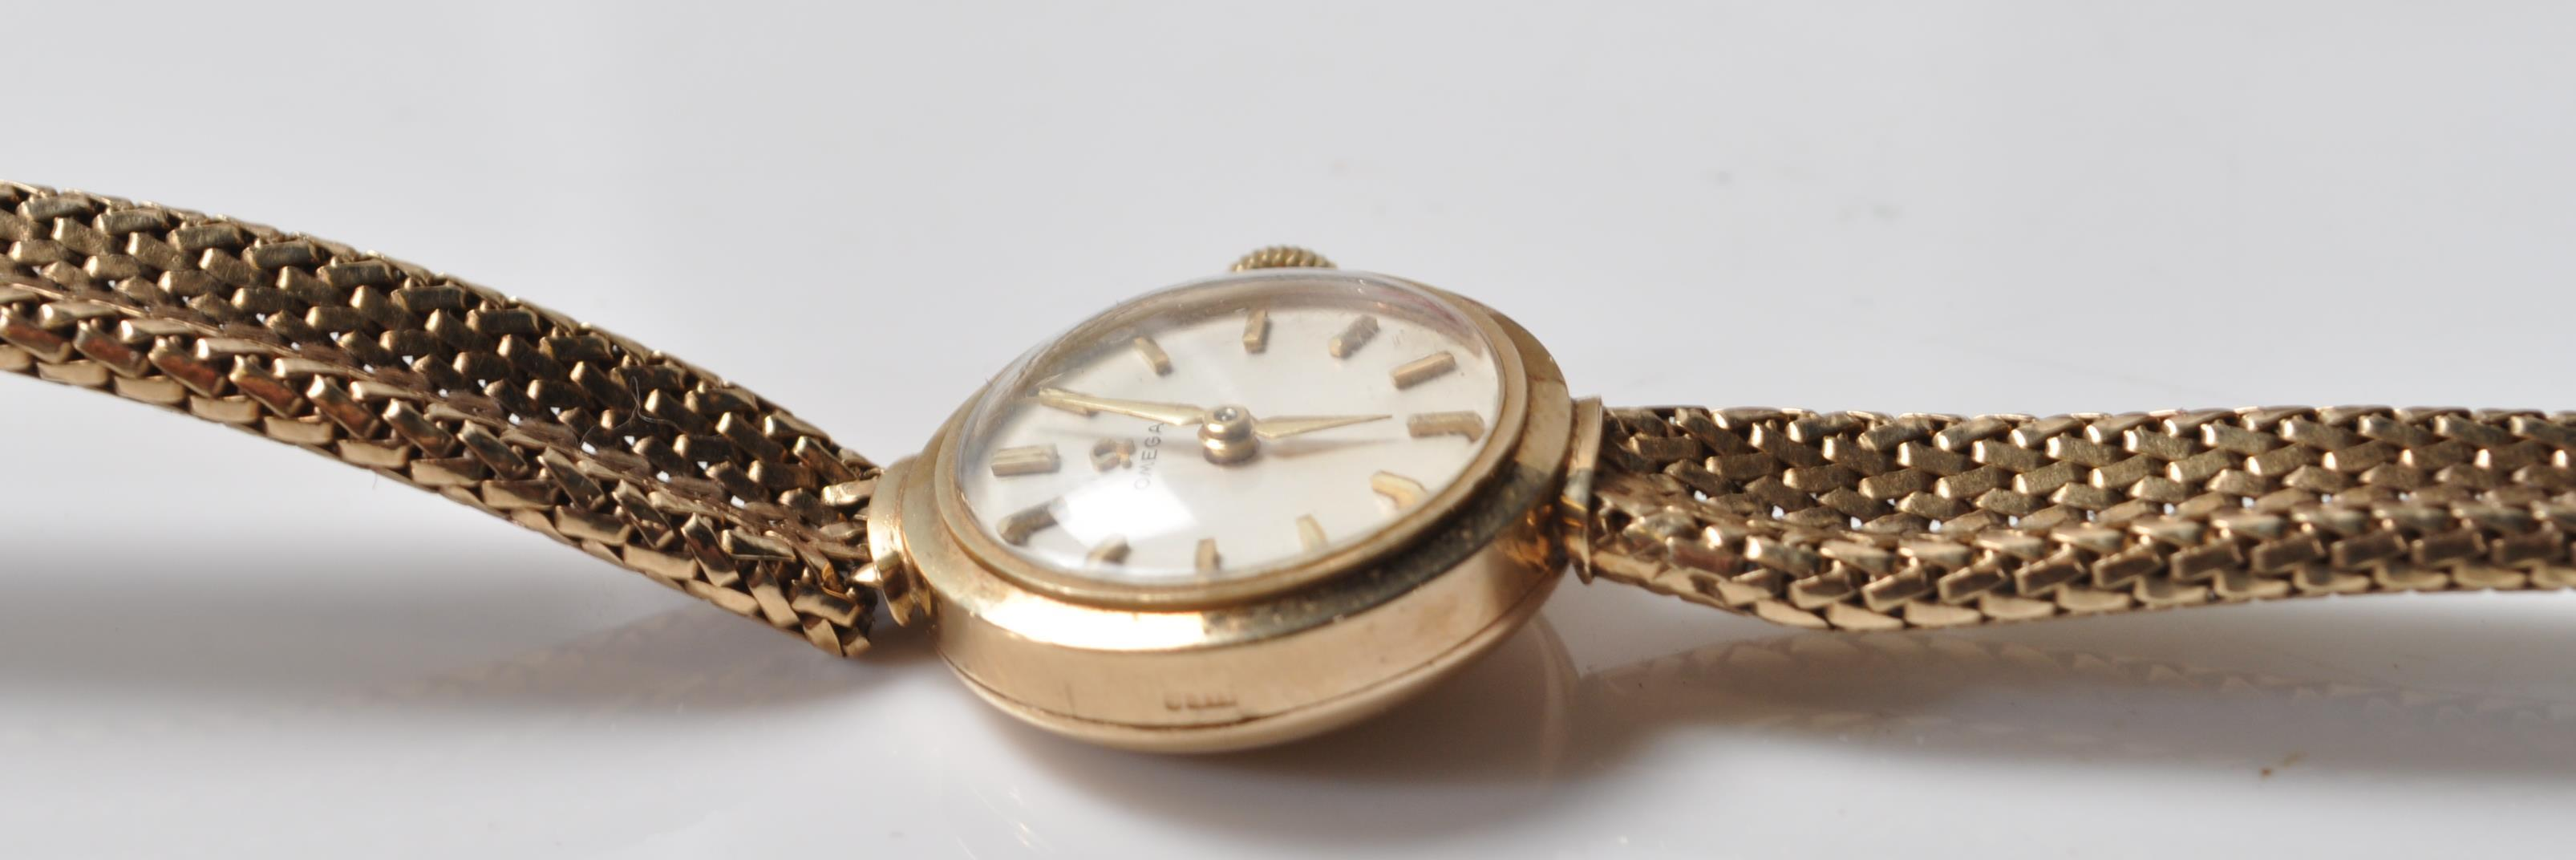 9CT GOLD OMEGA LADIES WATCH - Image 11 of 15